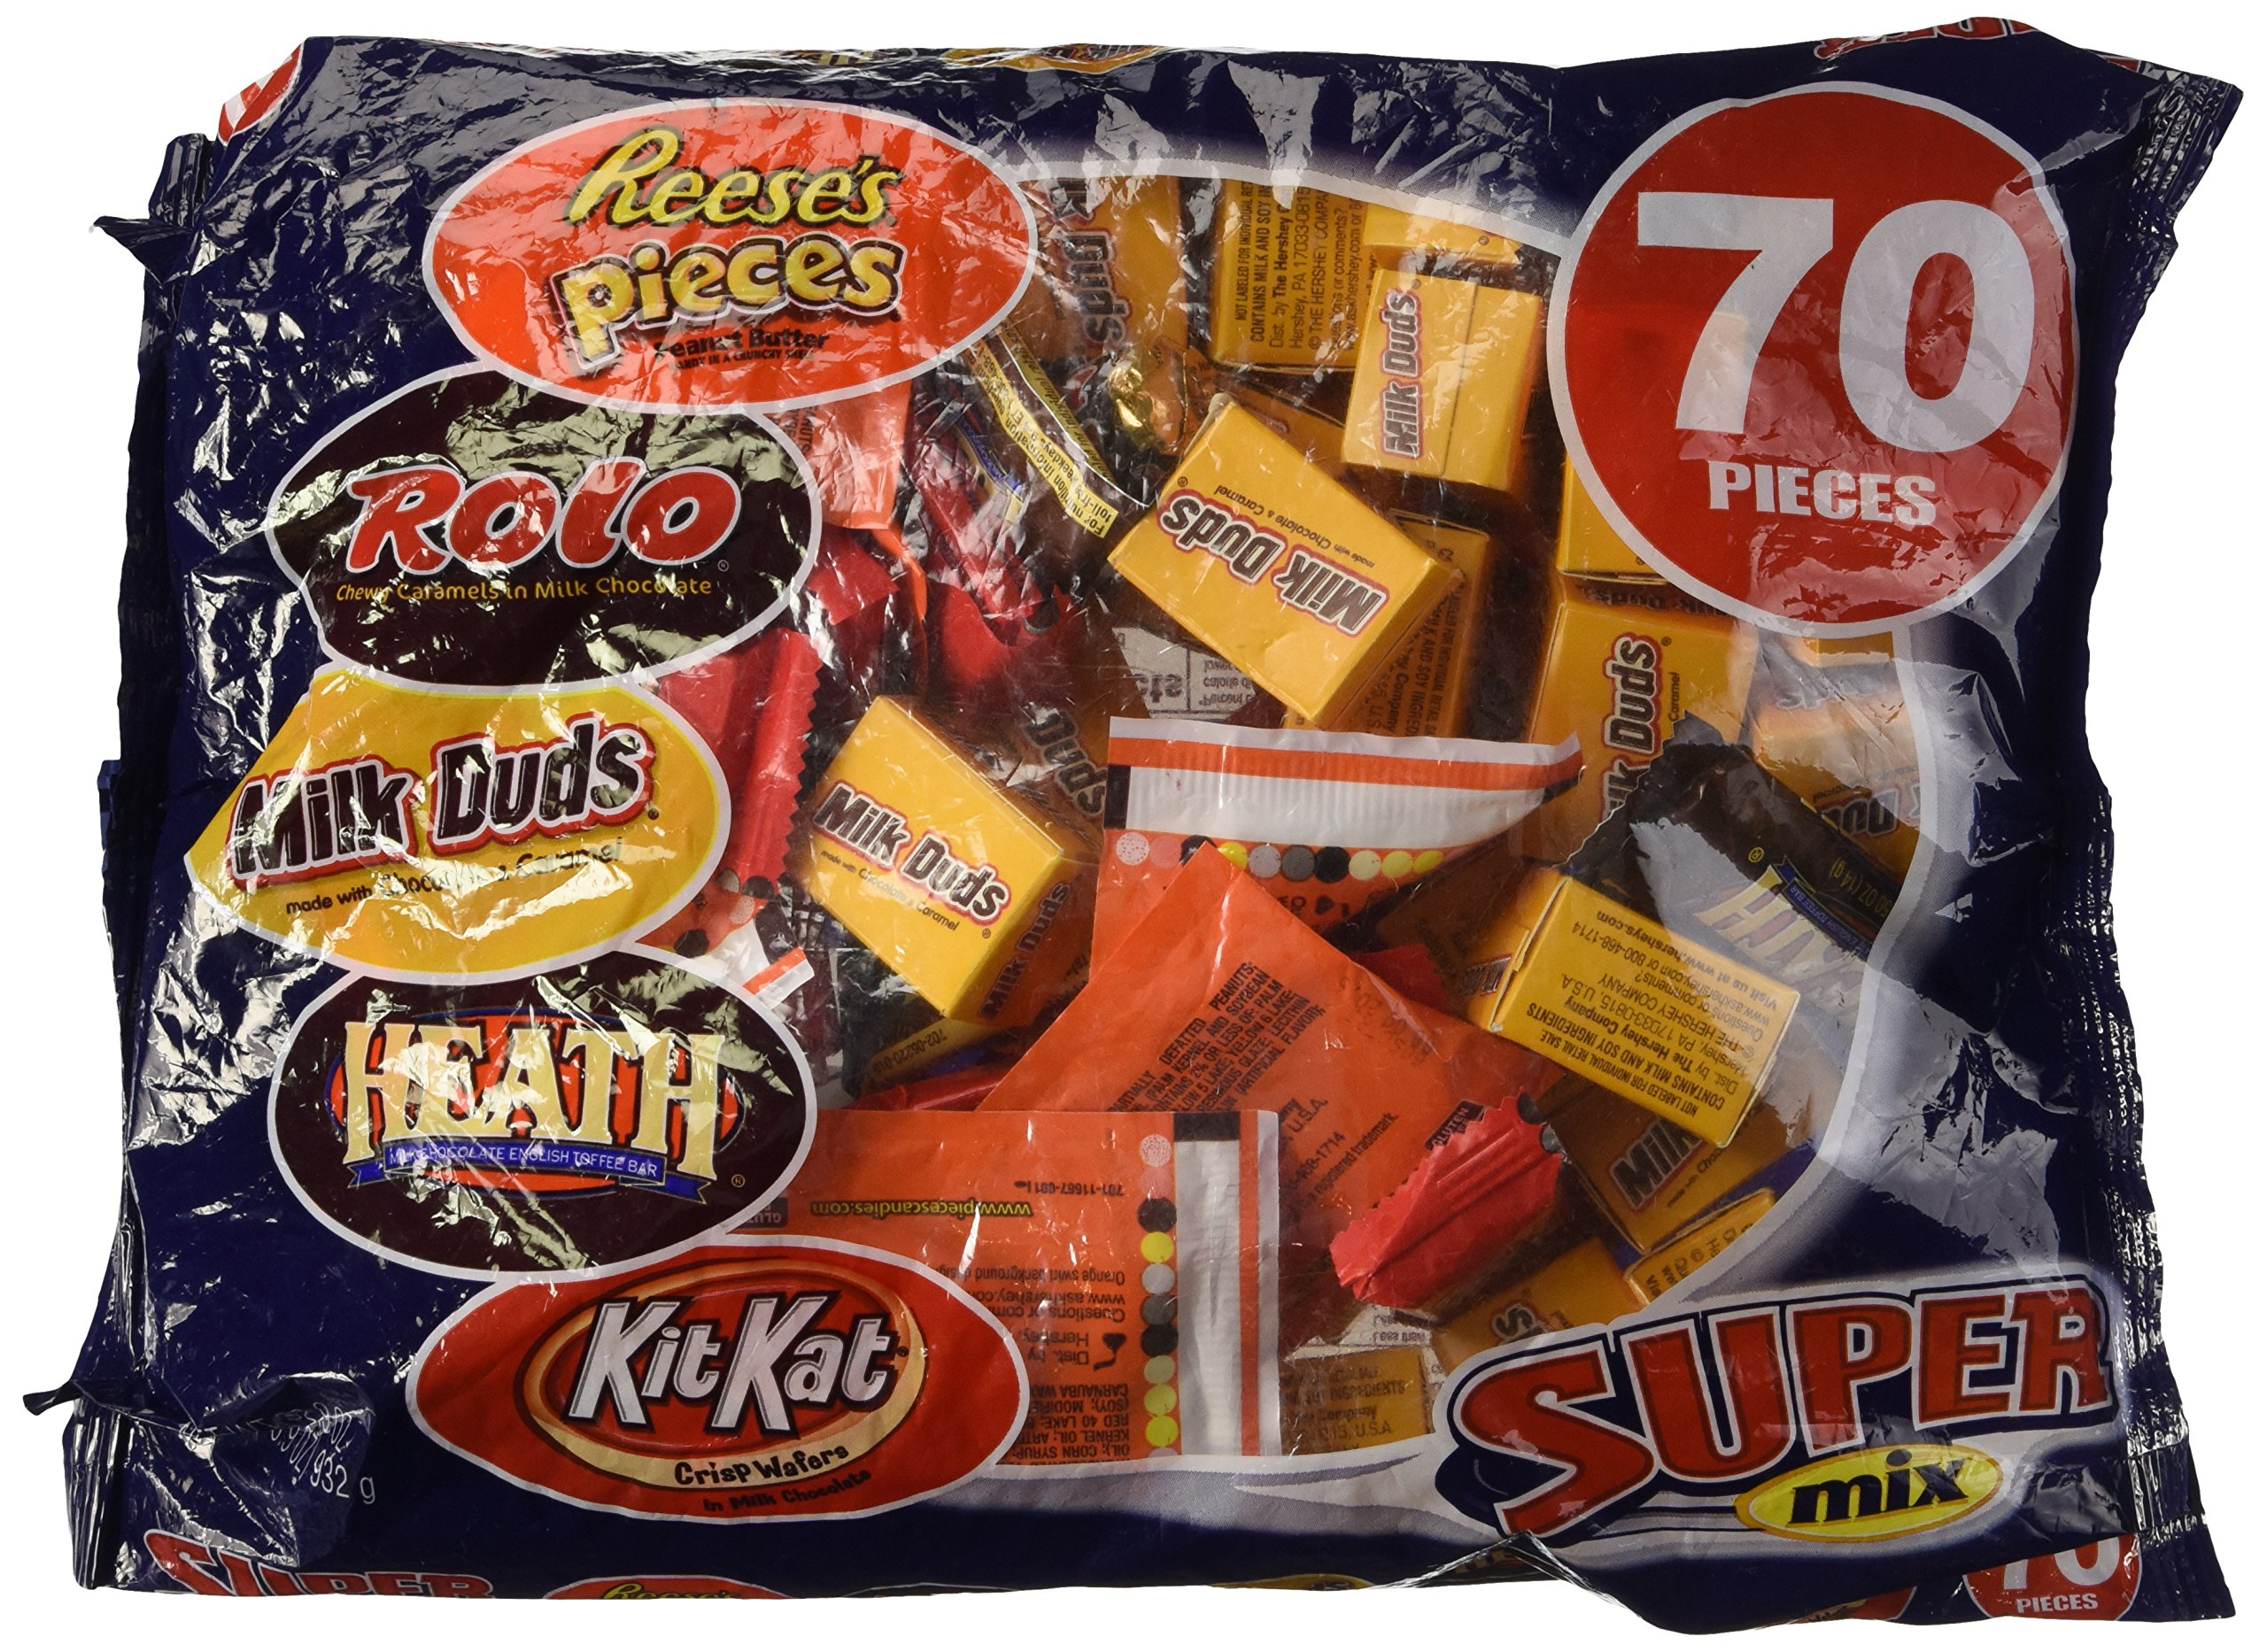 Hershey's Super Mix Assortment, 70-Piece Bag, 32.9-Oucne Bag